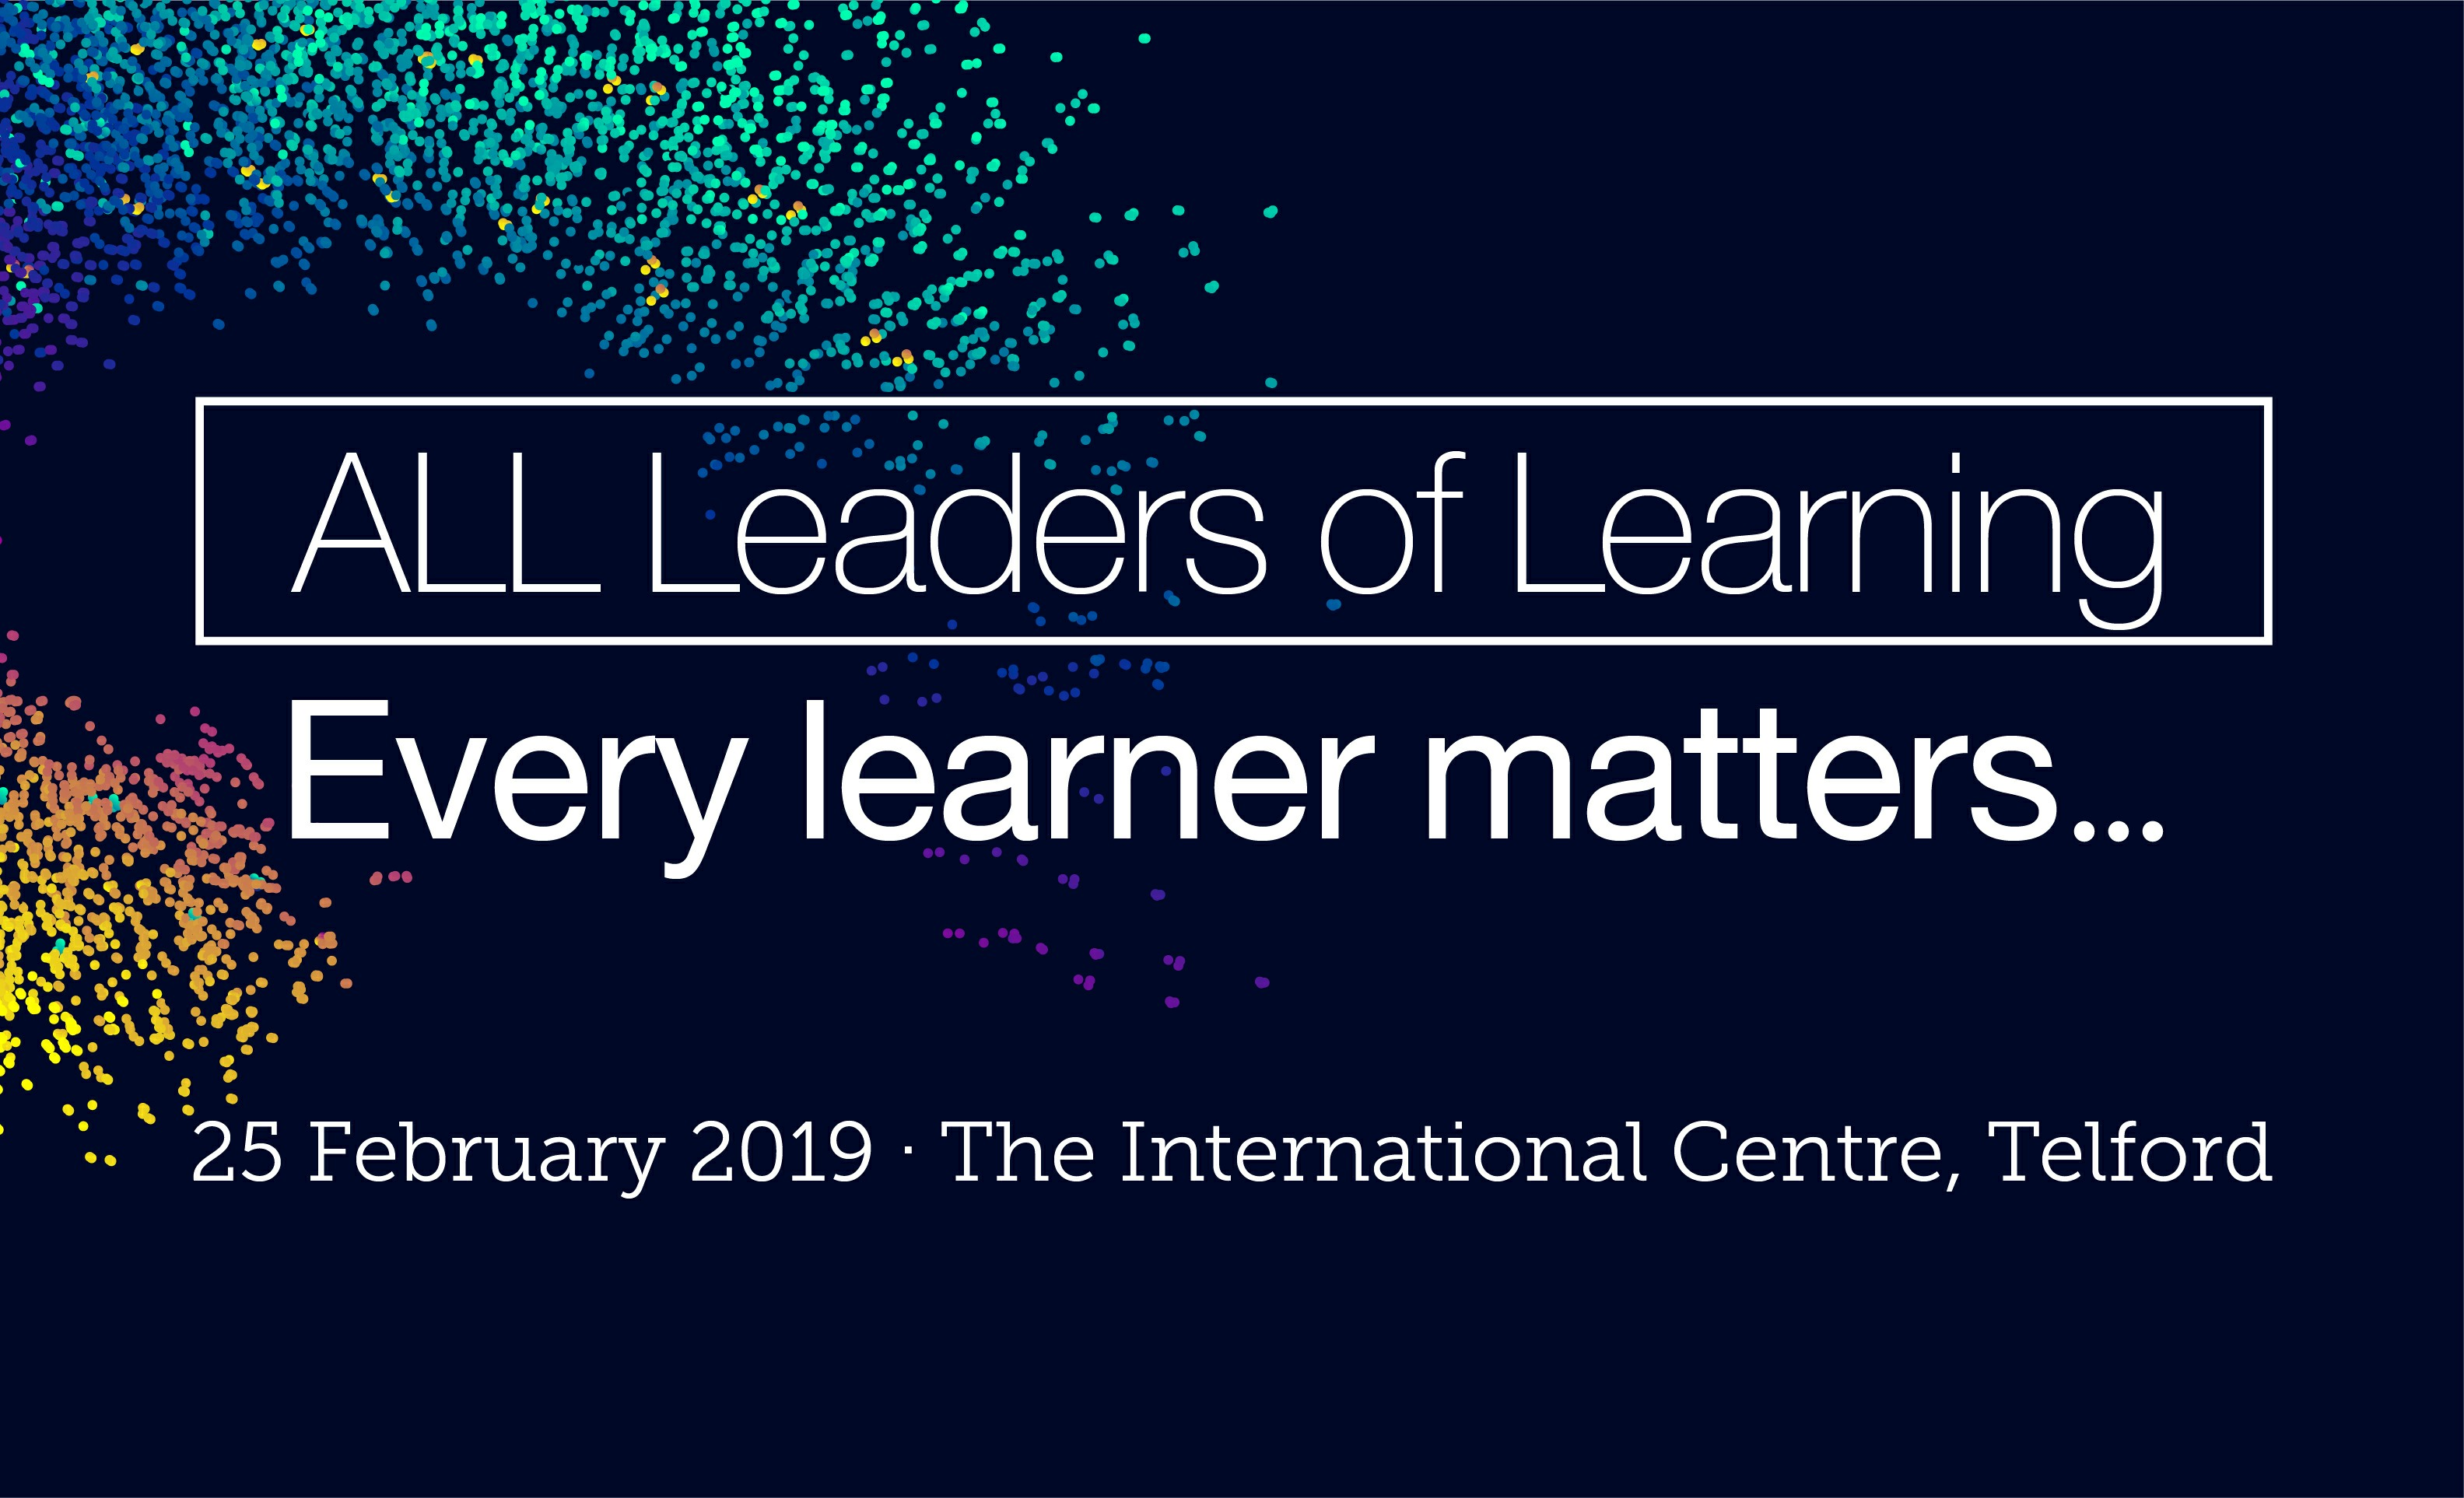 All leaders of learning - every learner matters